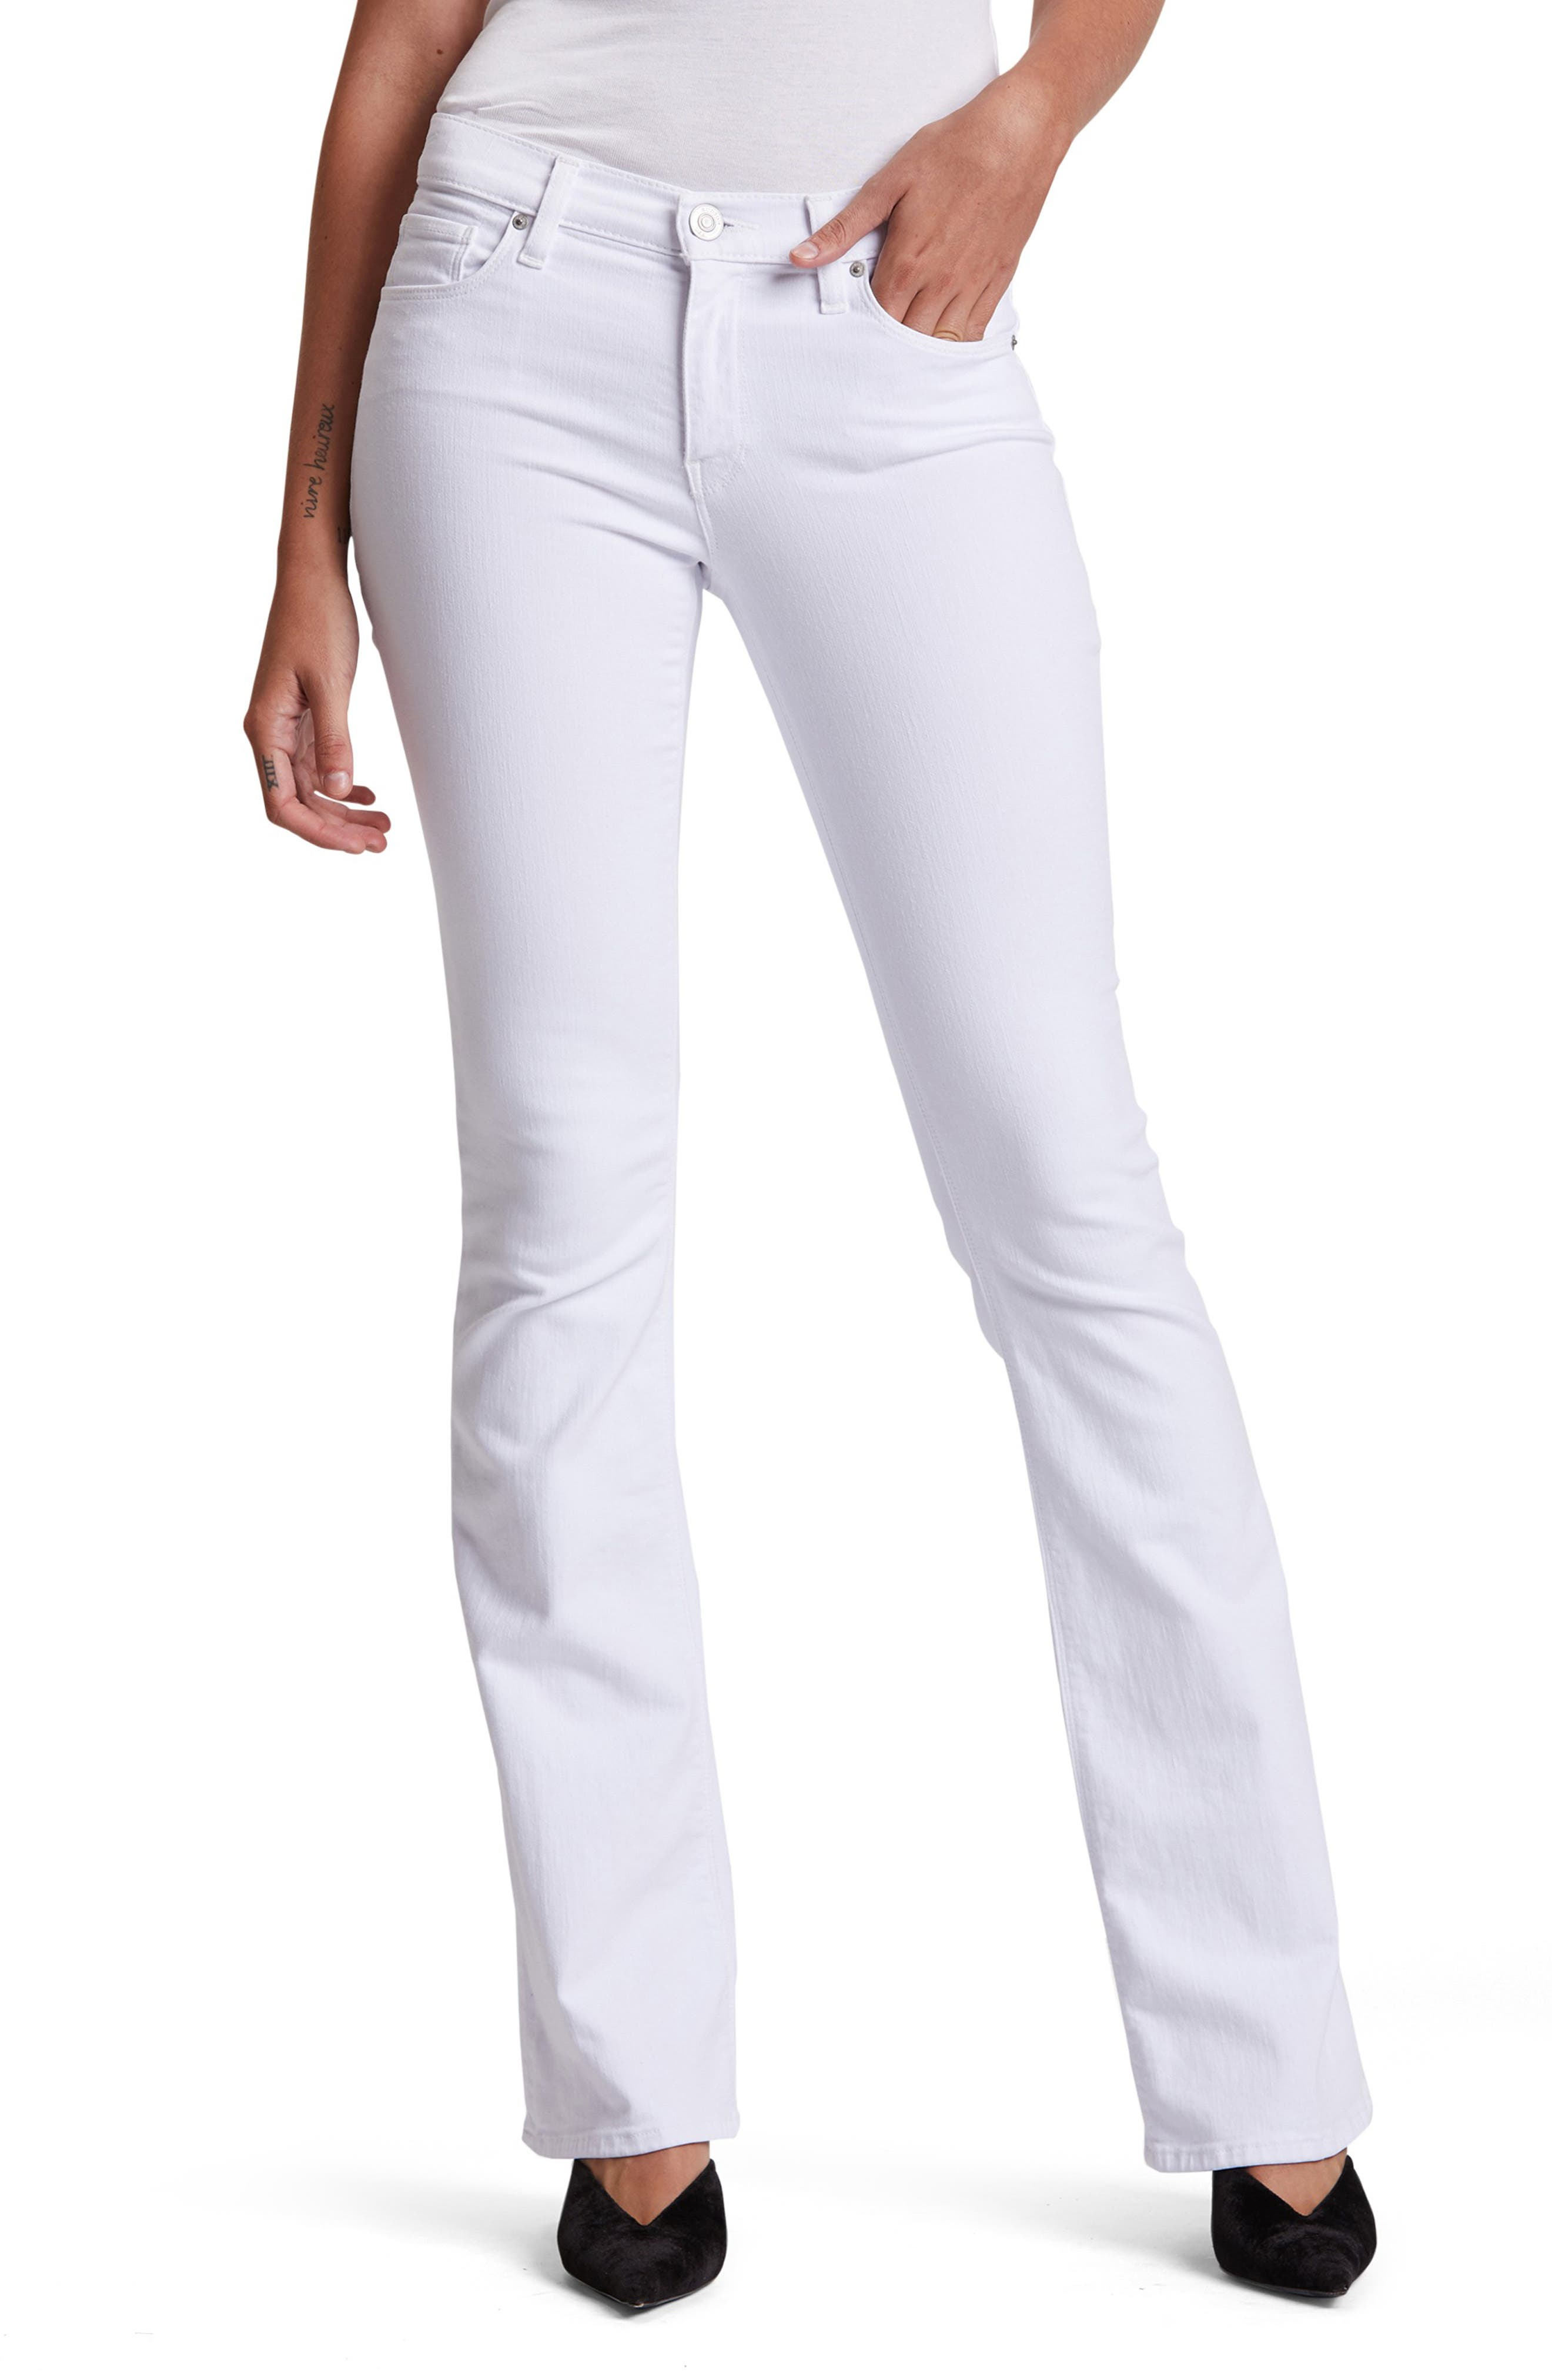 Mid-rise bootcut jeans in a polished white wash are crafted from soft, shape-retaining stretch denim that allows for optimal movement. Style Name: Hudson Jeans Drew Bootcut Jeans. Style Number: 5790270. Available in stores.